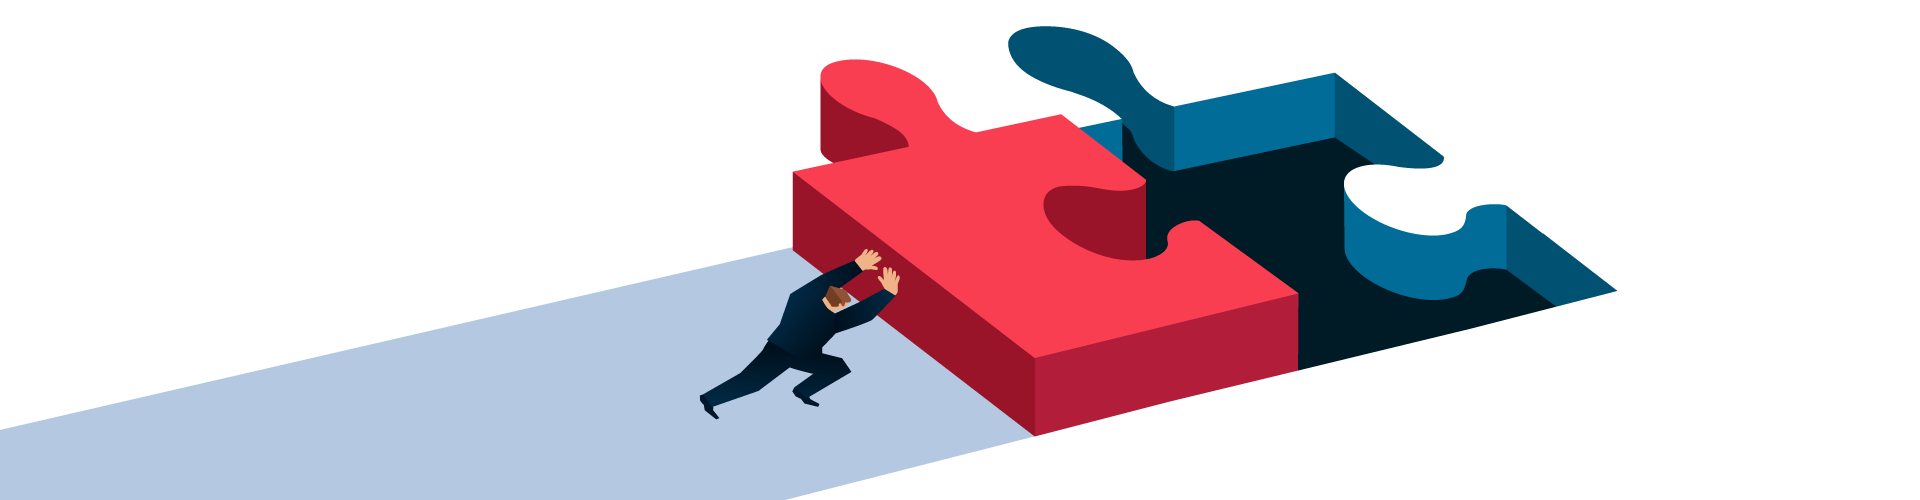 Illustration of person pushing red puzzle piece towards a puzzle piece hole